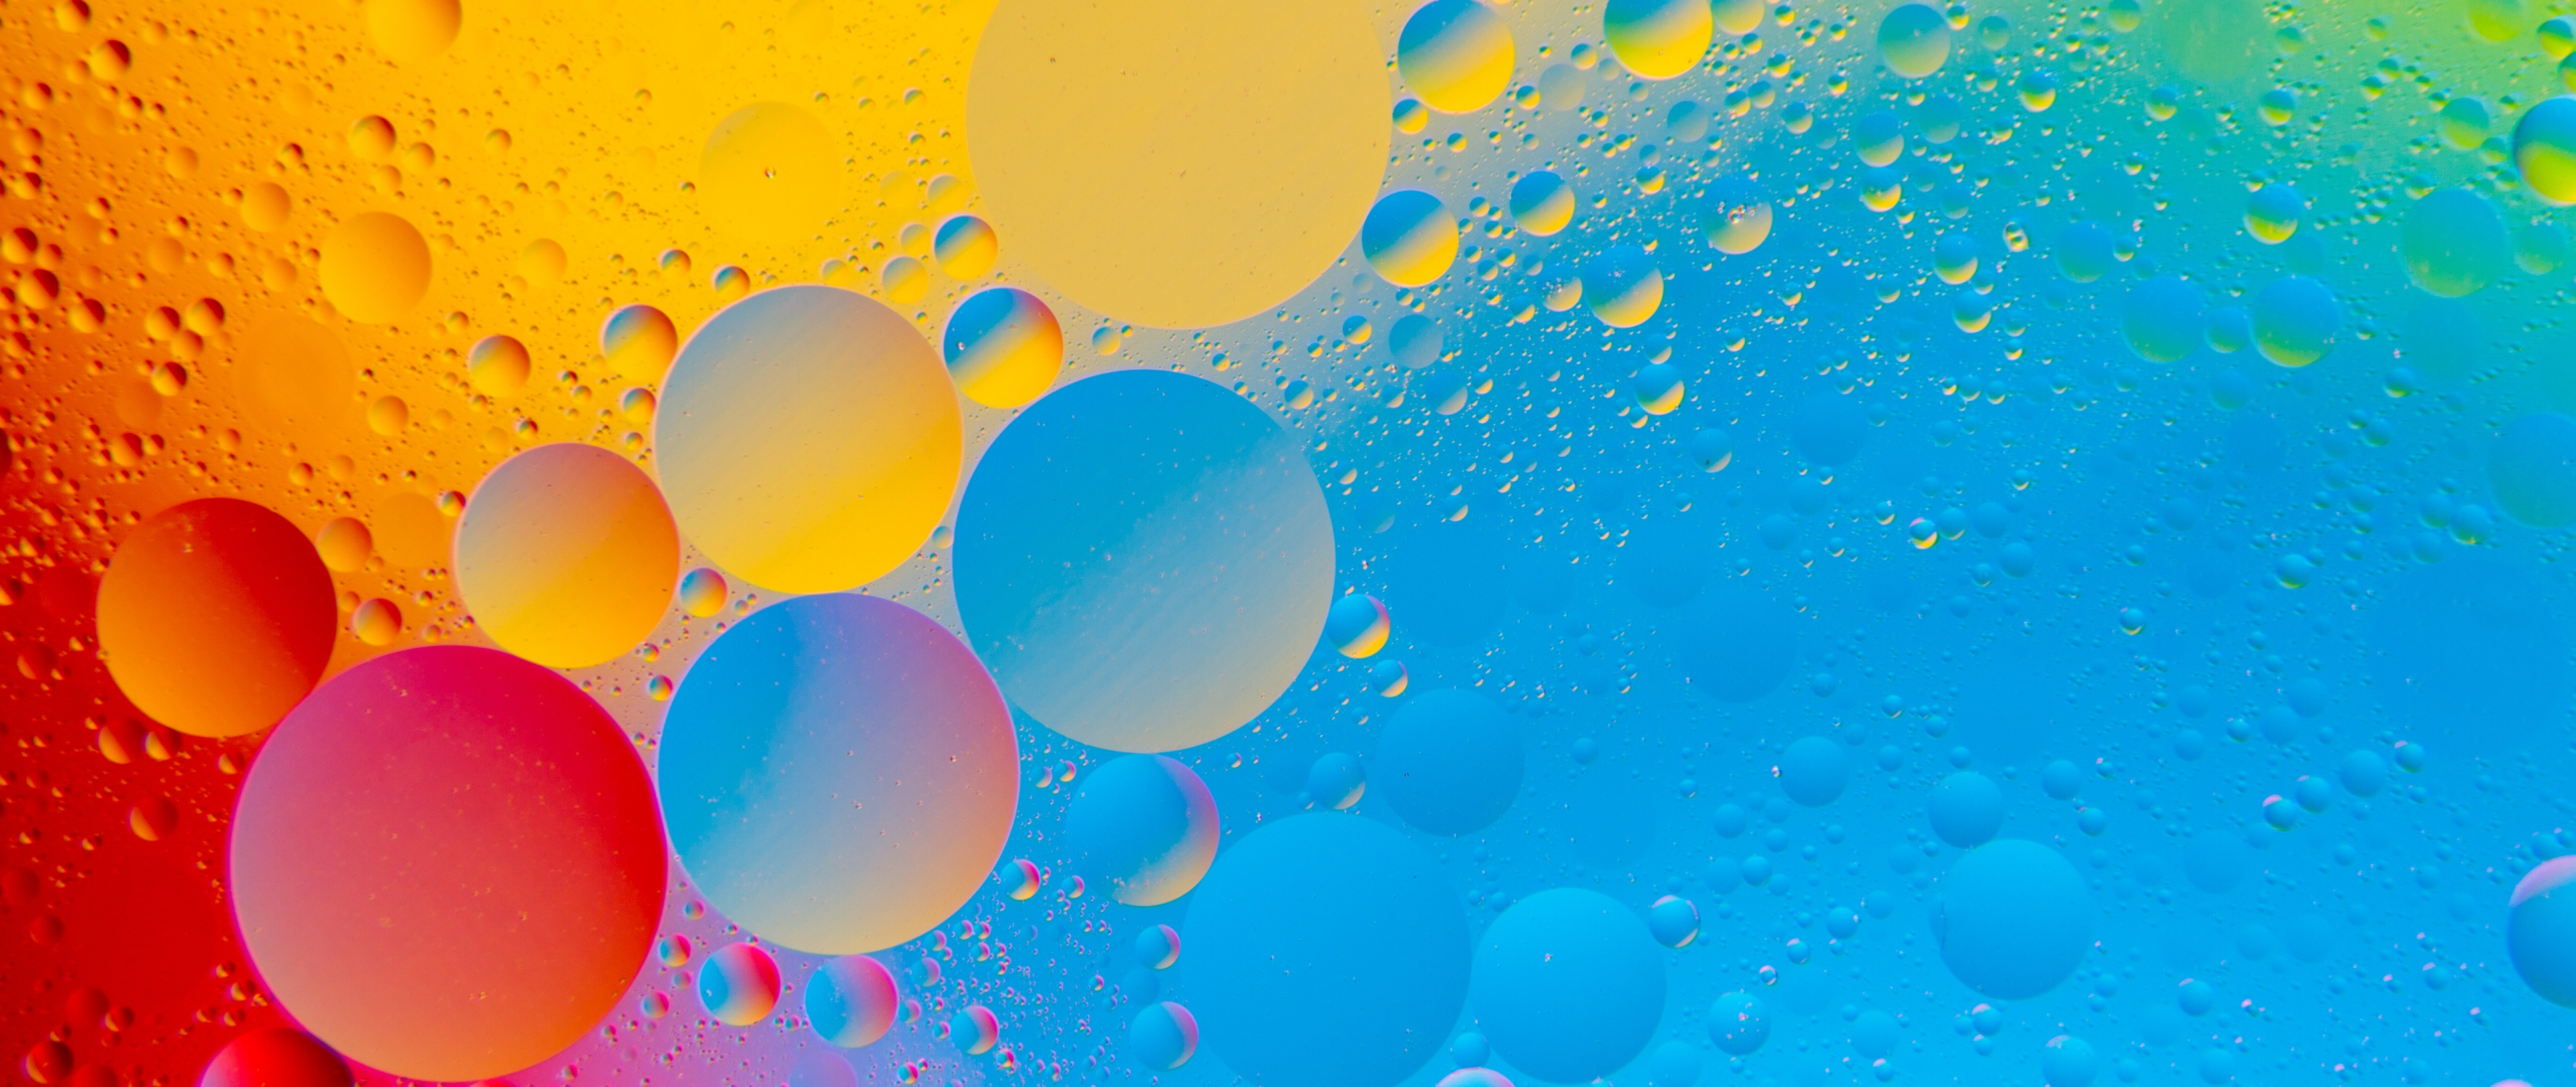 Colourful bubbles 4k hd abstract wallpaper 4k ultra hd - Desktop wallpaper 4k ...